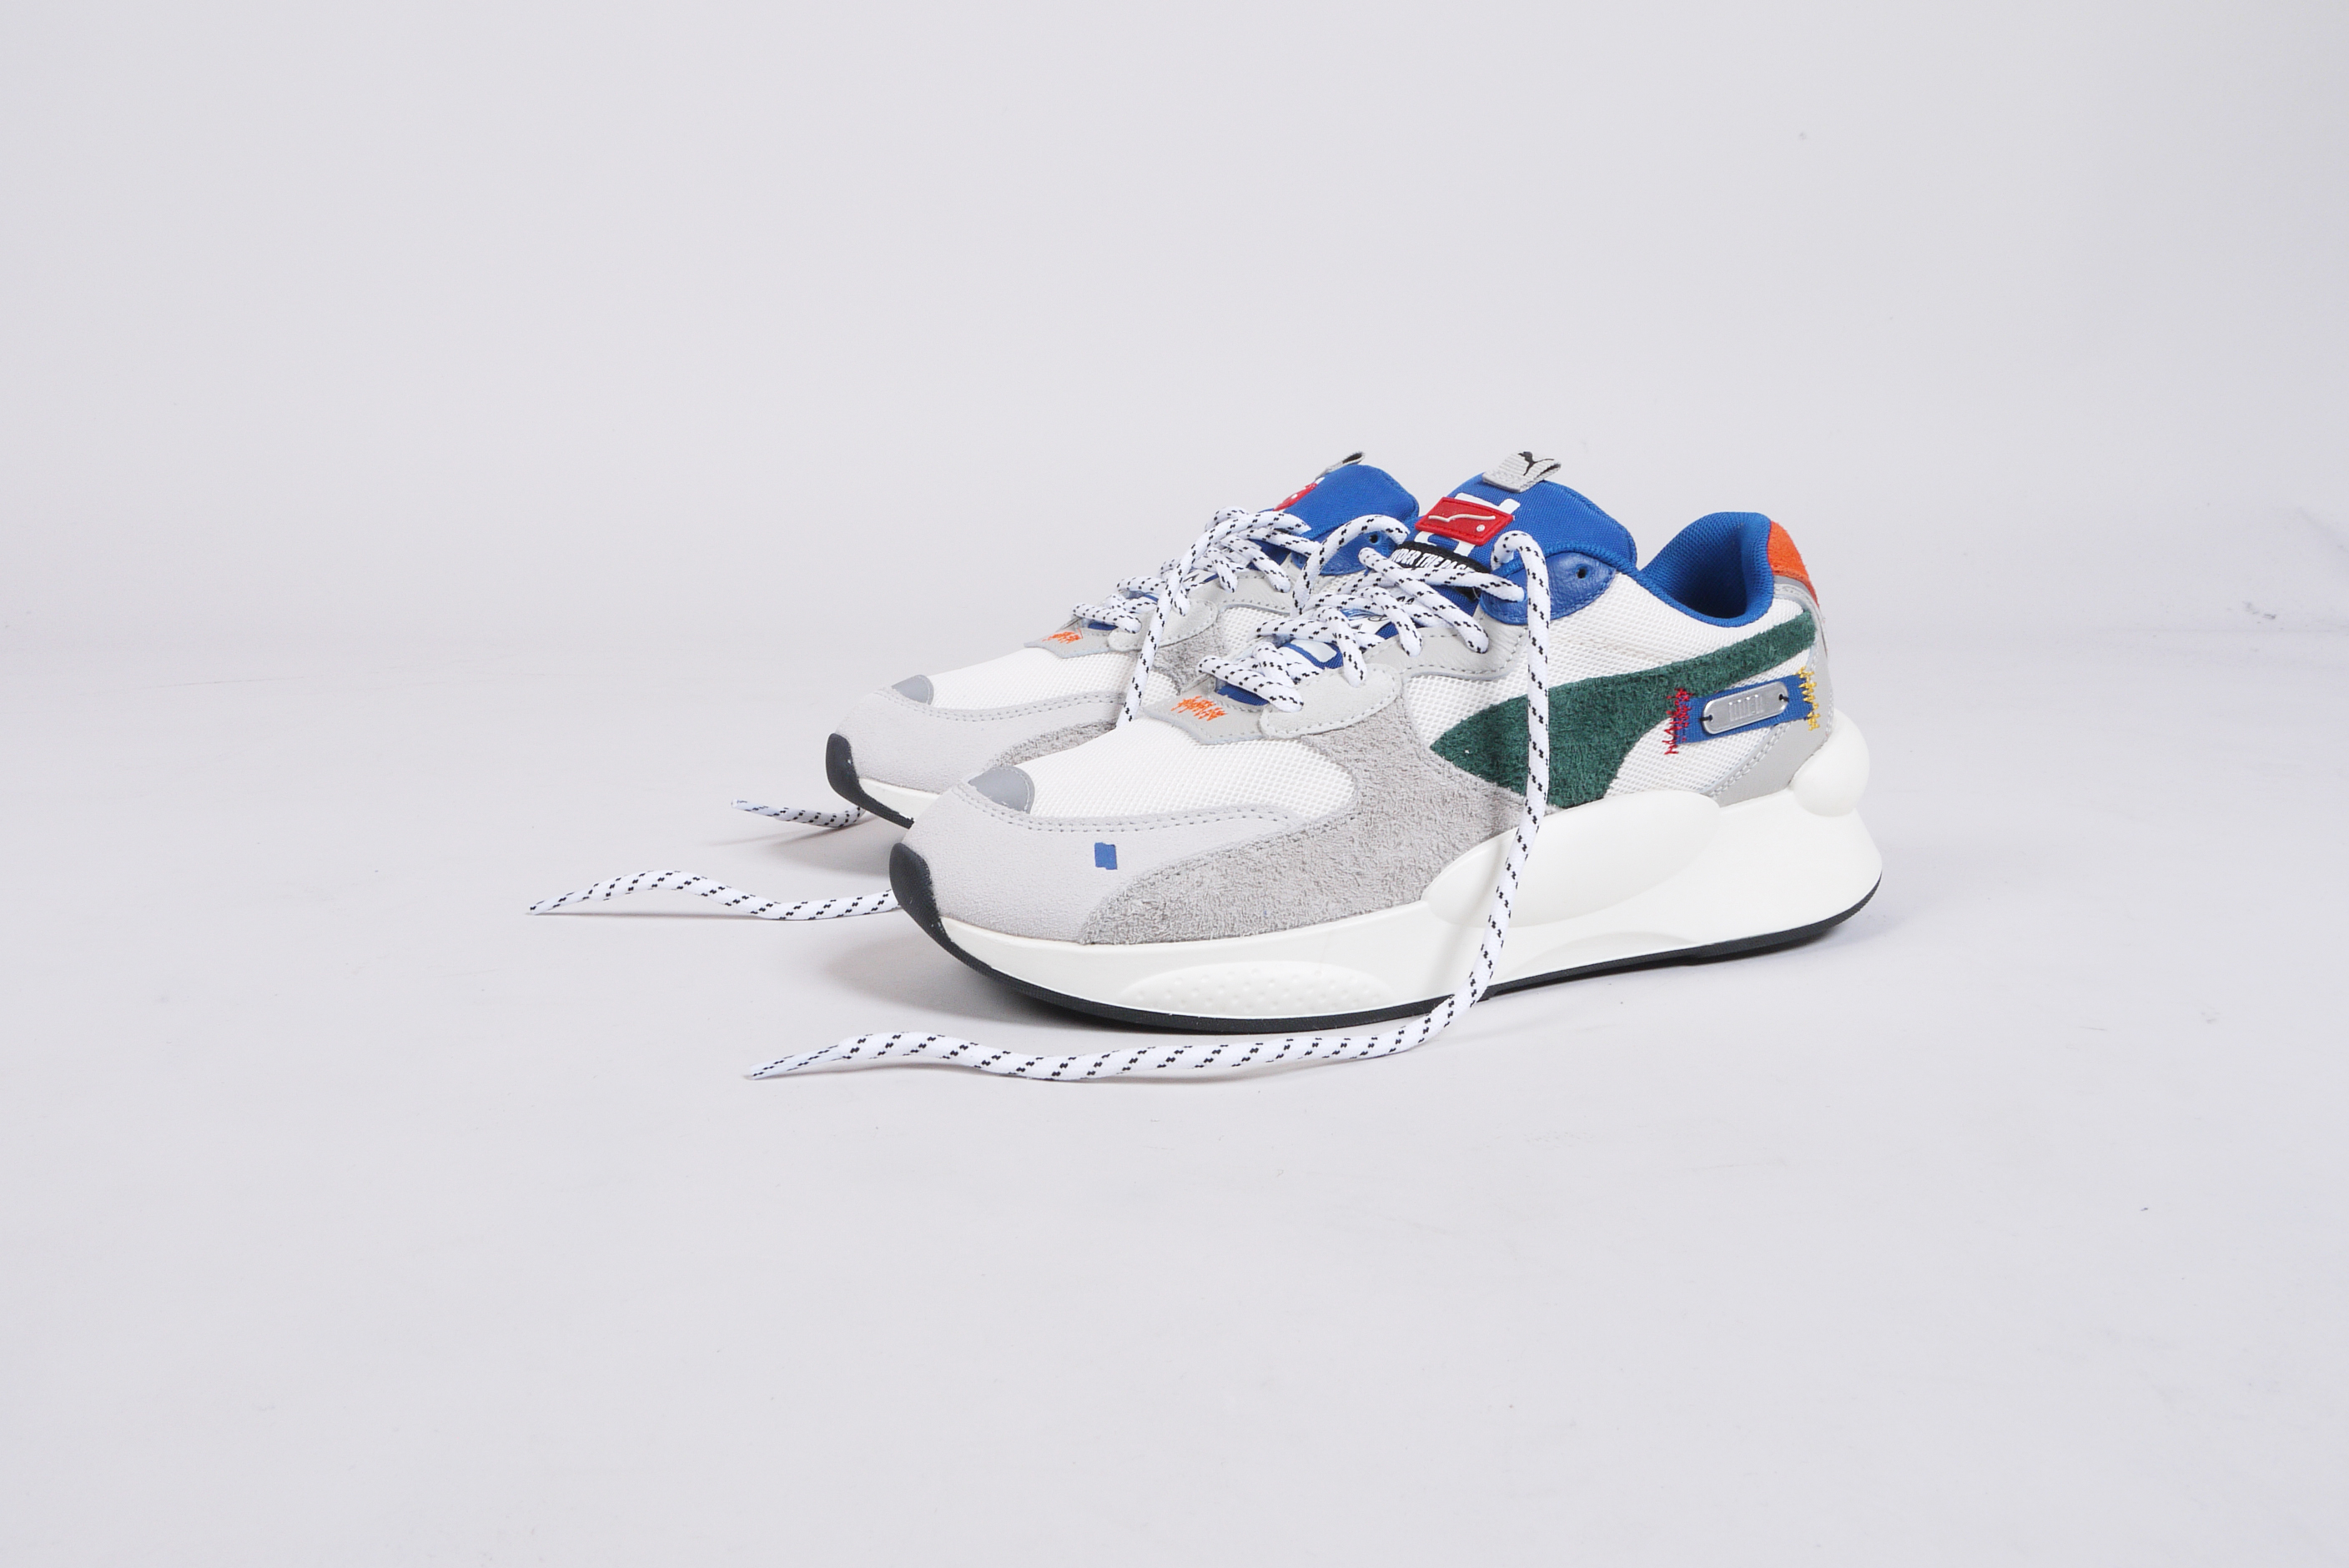 Ader Error x Puma RS 9.8